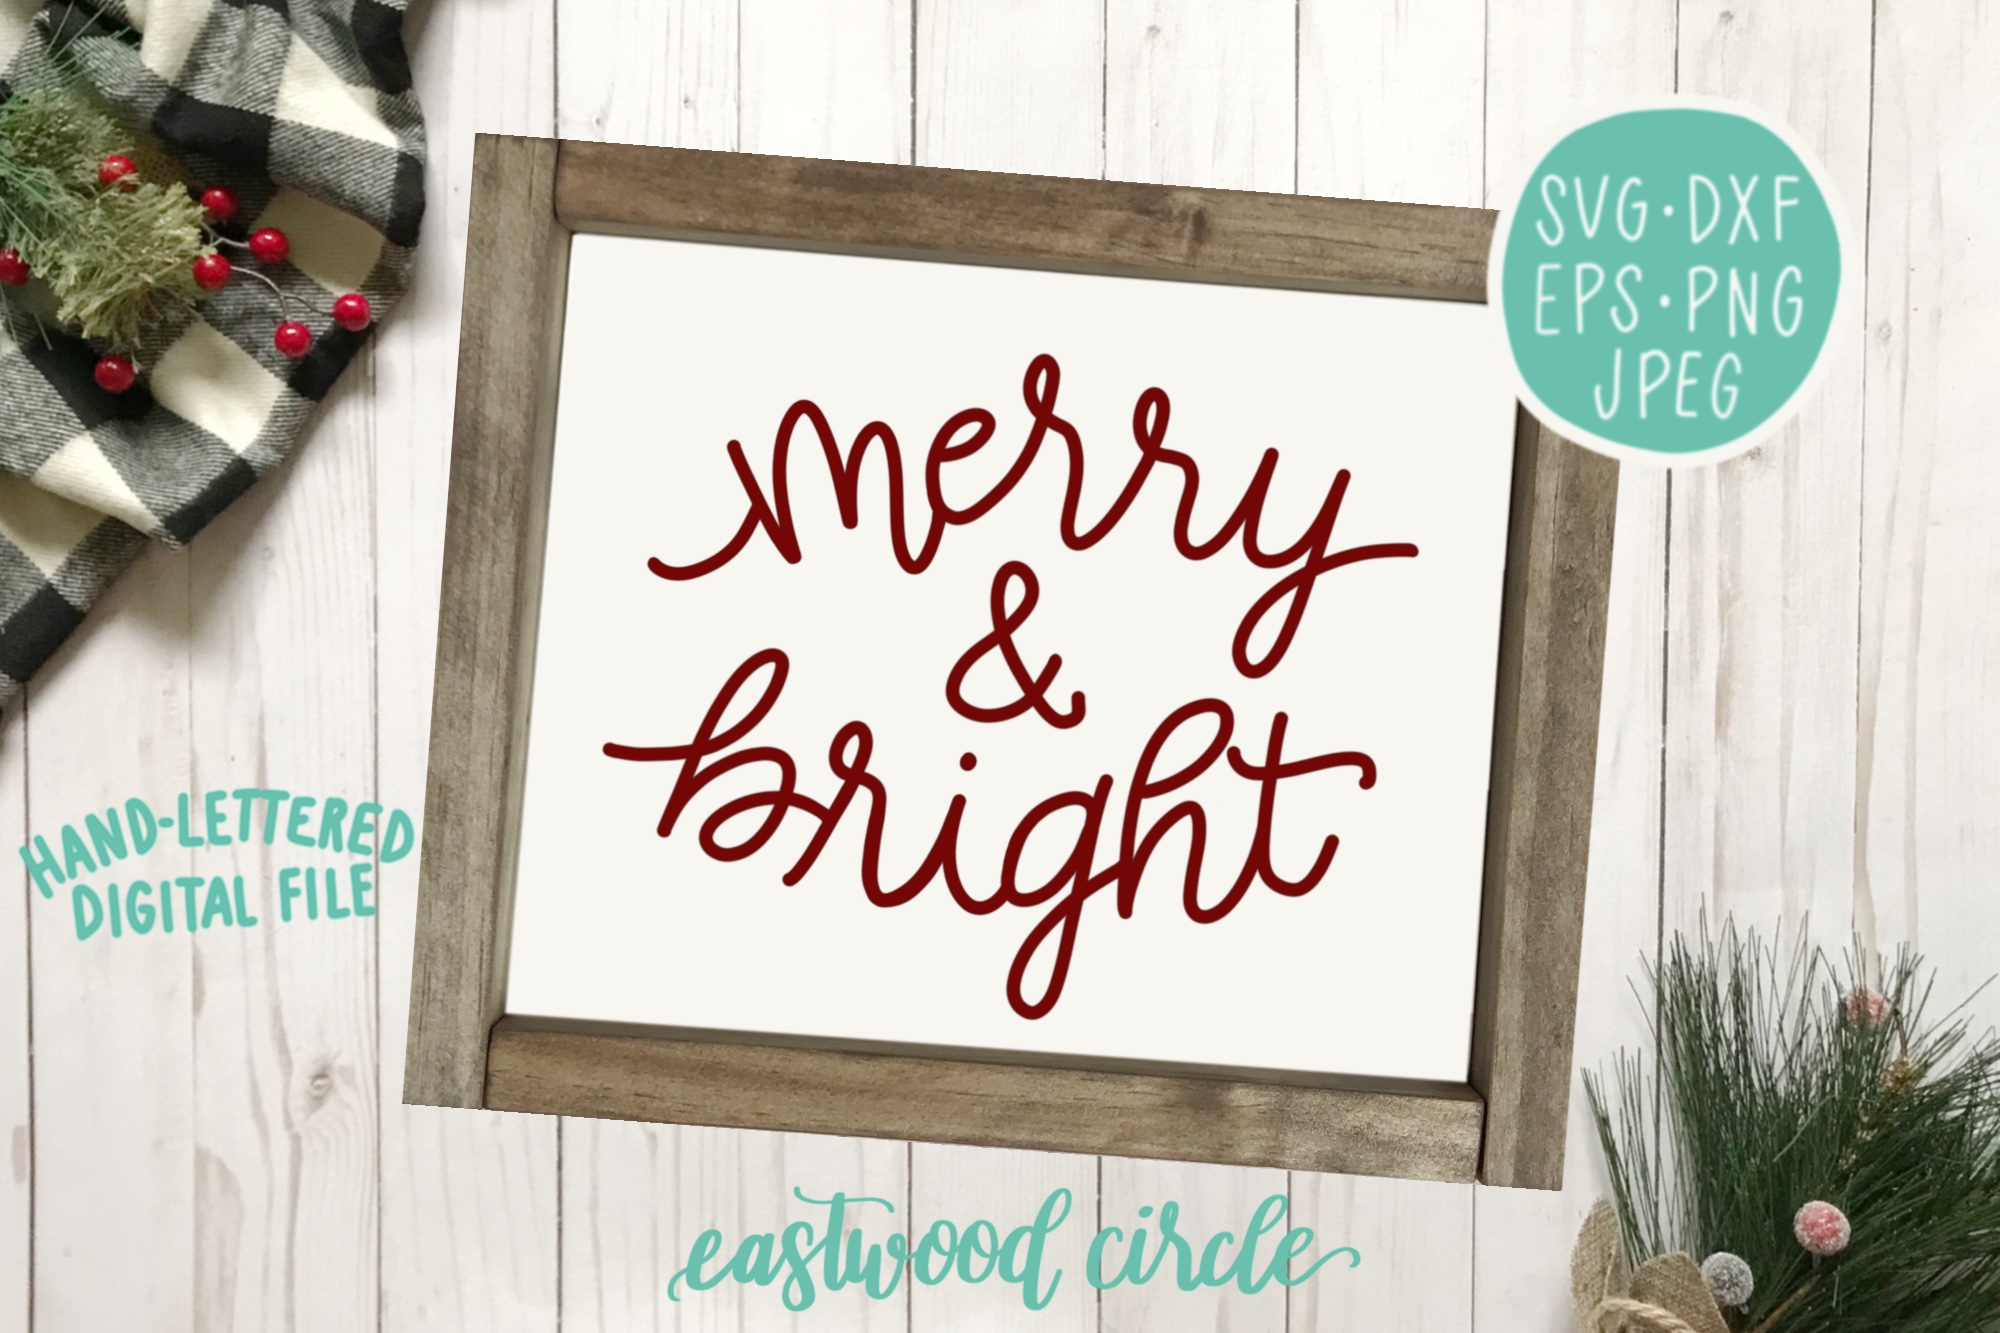 Christmas SVG Bundle - Hand Lettered SVG Files for Signs example image 7